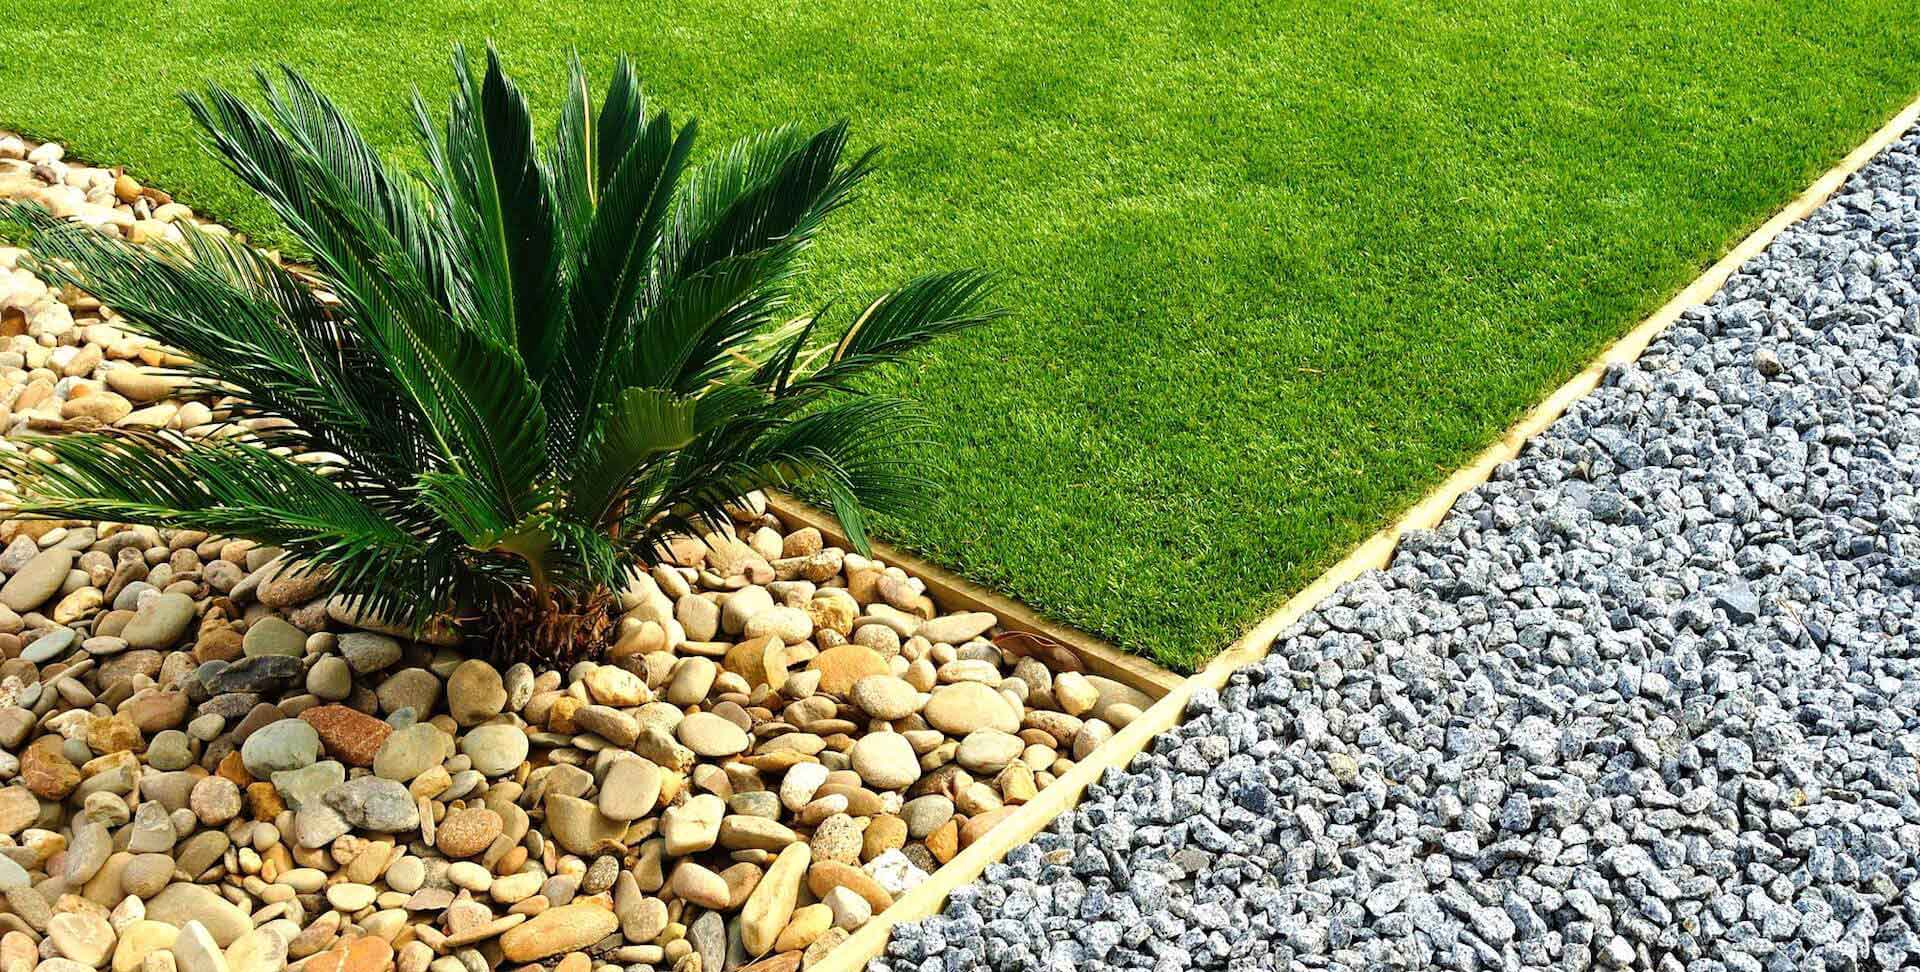 Stepping and Decorative Stones for Your Lawn, Garden, and Driveway